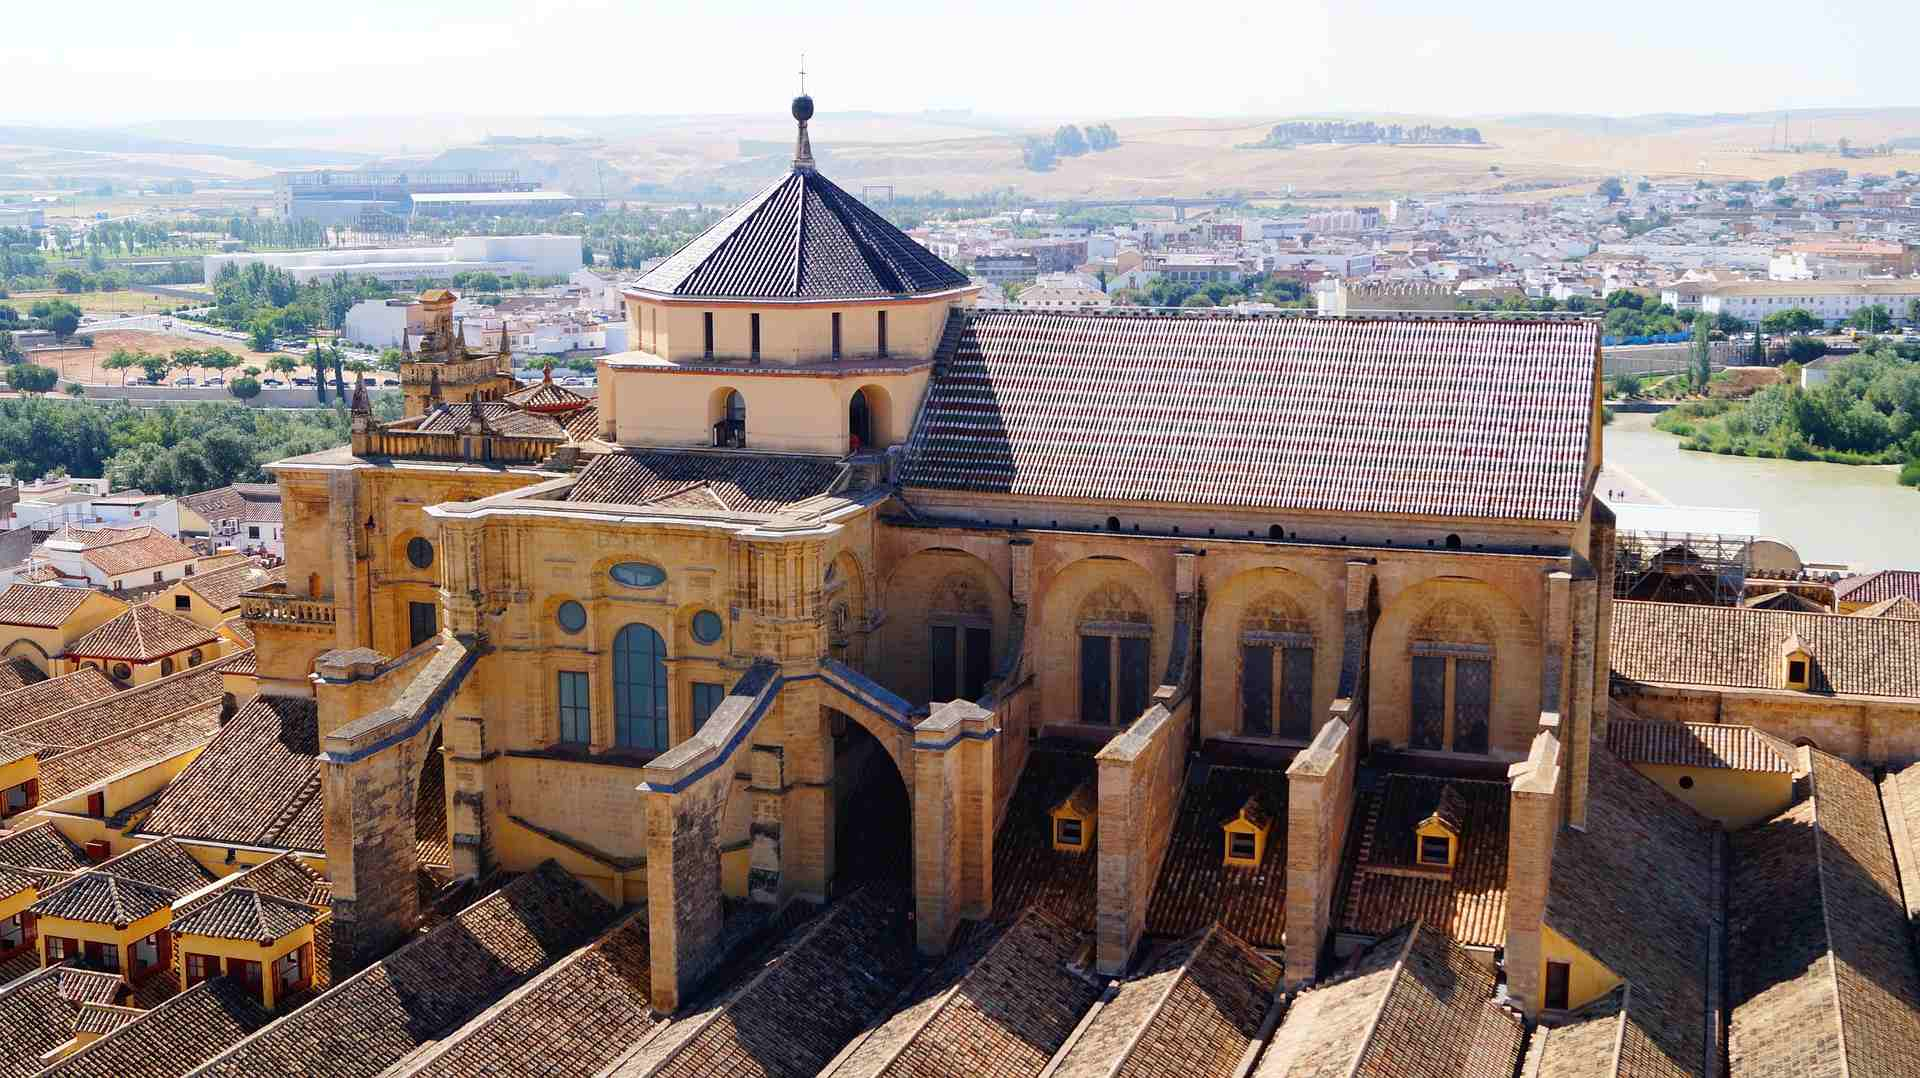 The Great Mosque Of Cordoba | Traveling in Spain